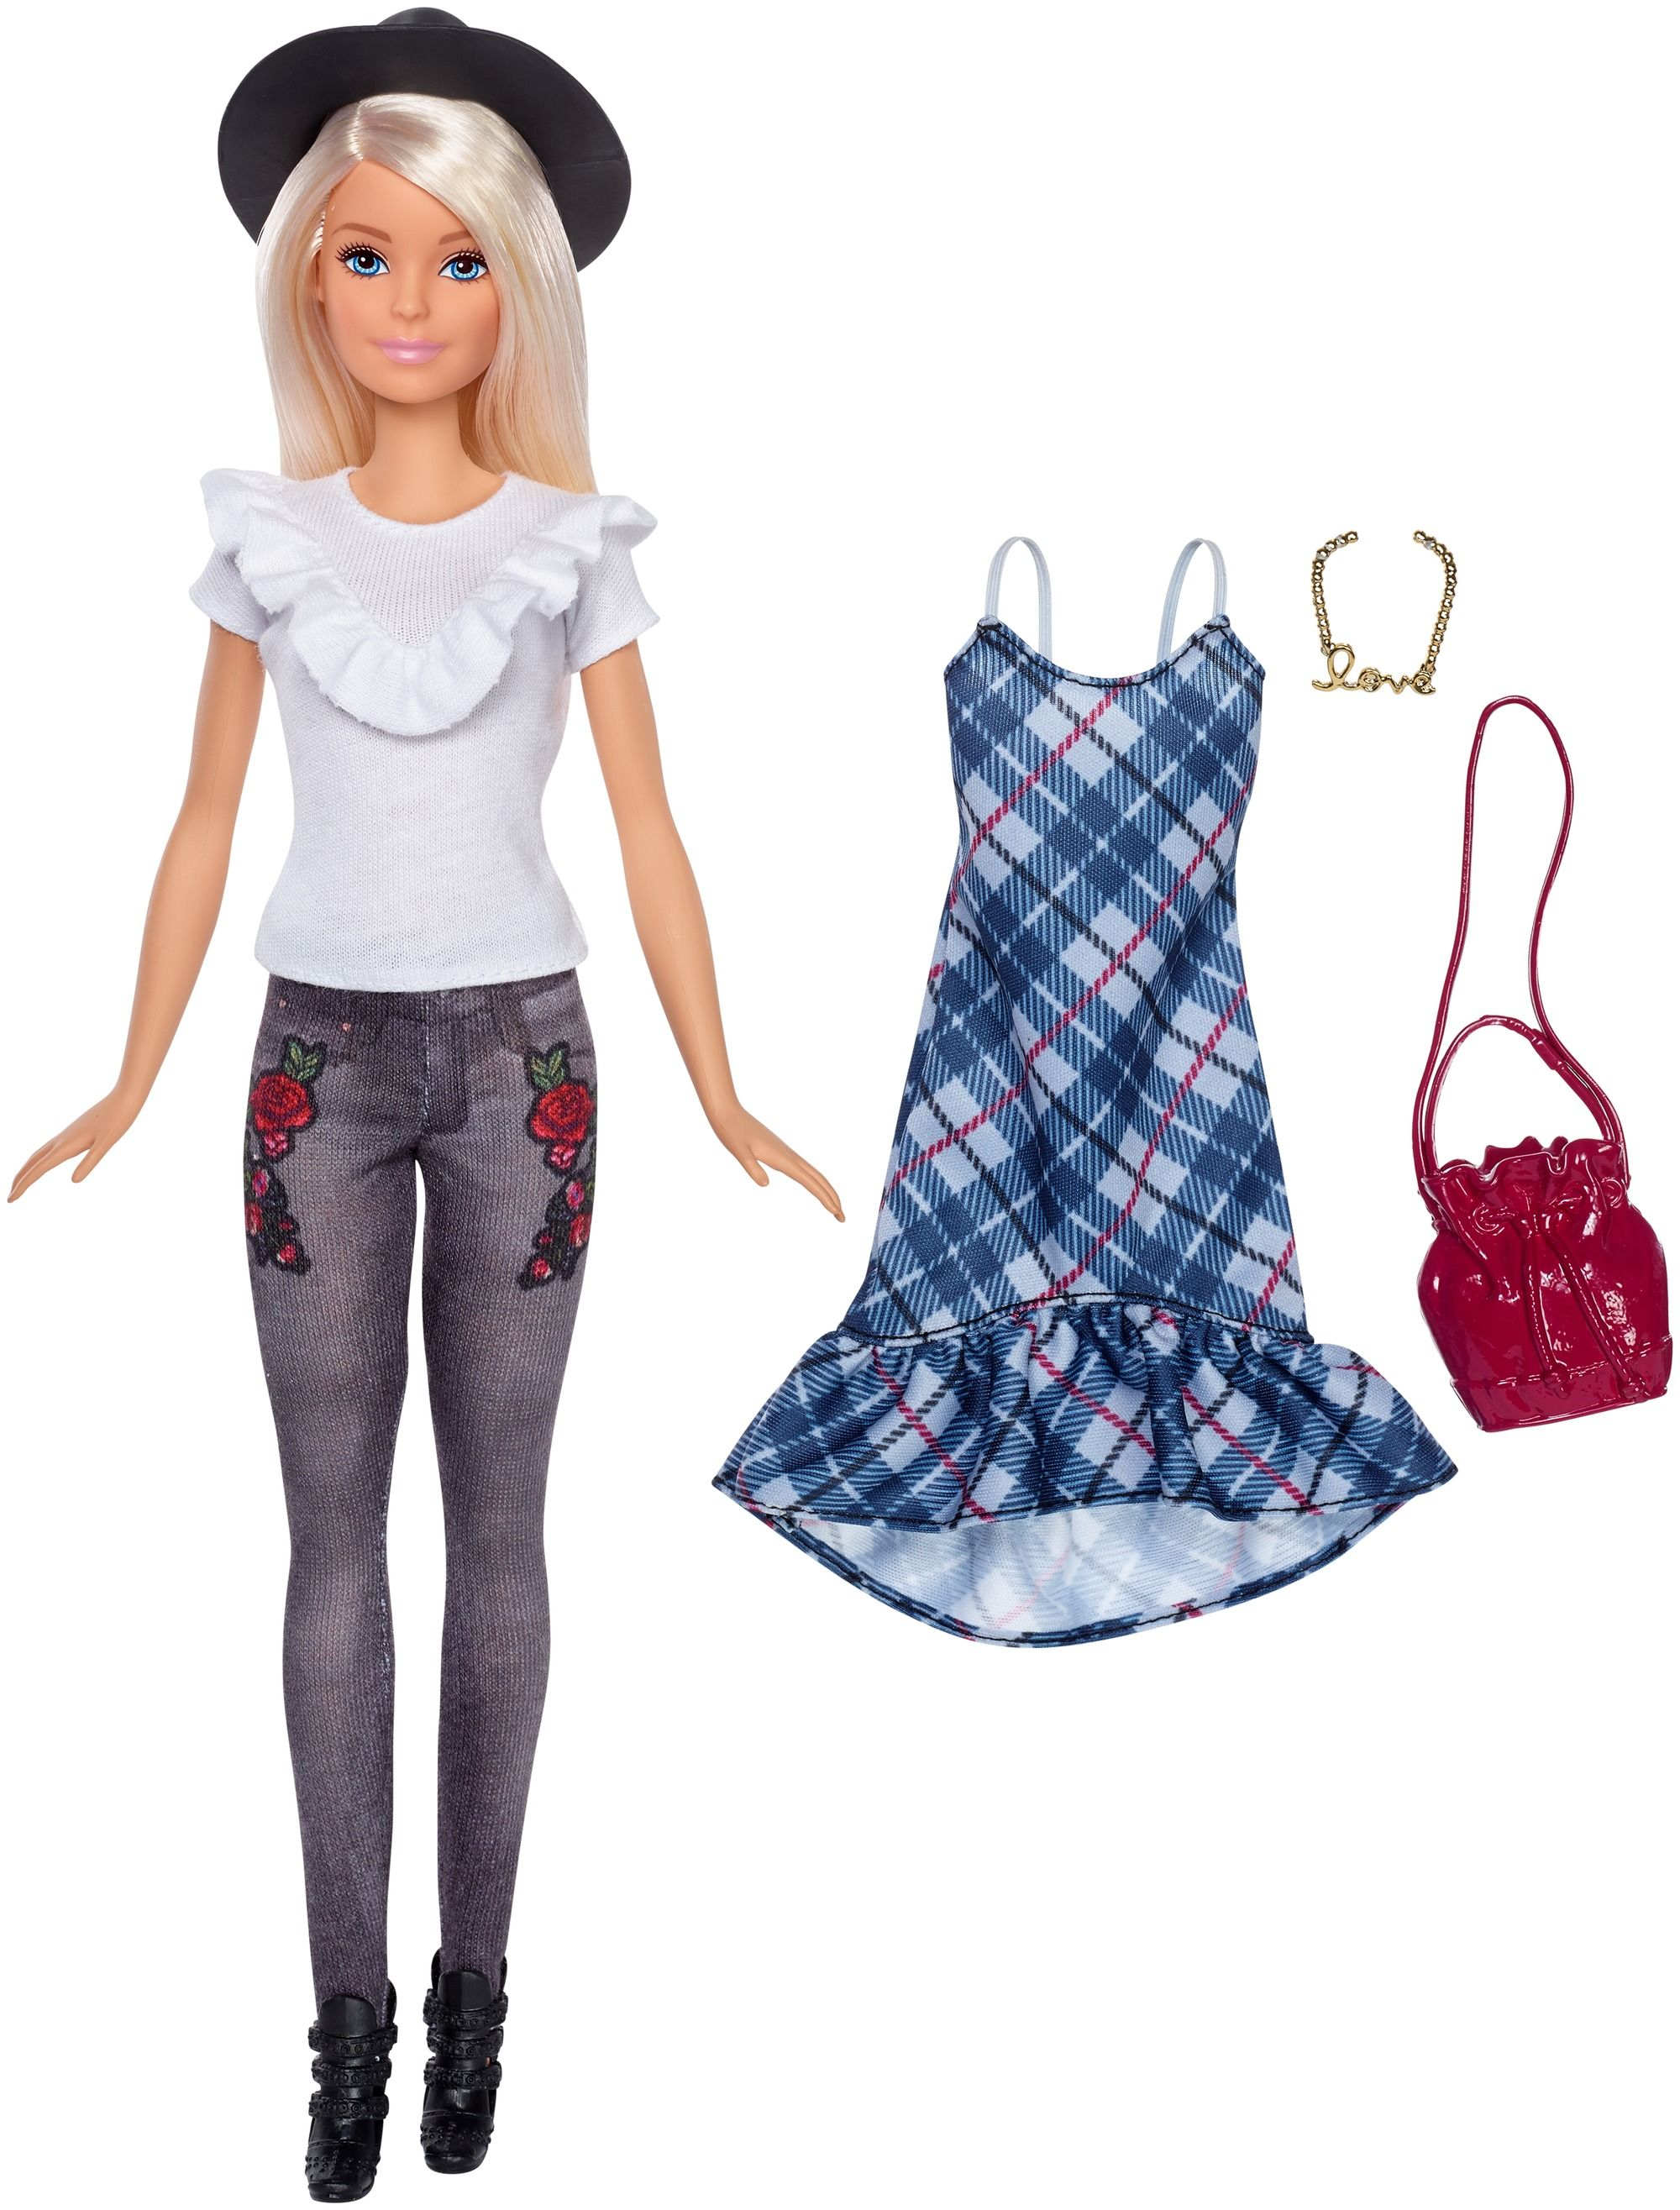 Toys With Images Barbie Fashionista Doll Clothes Barbie